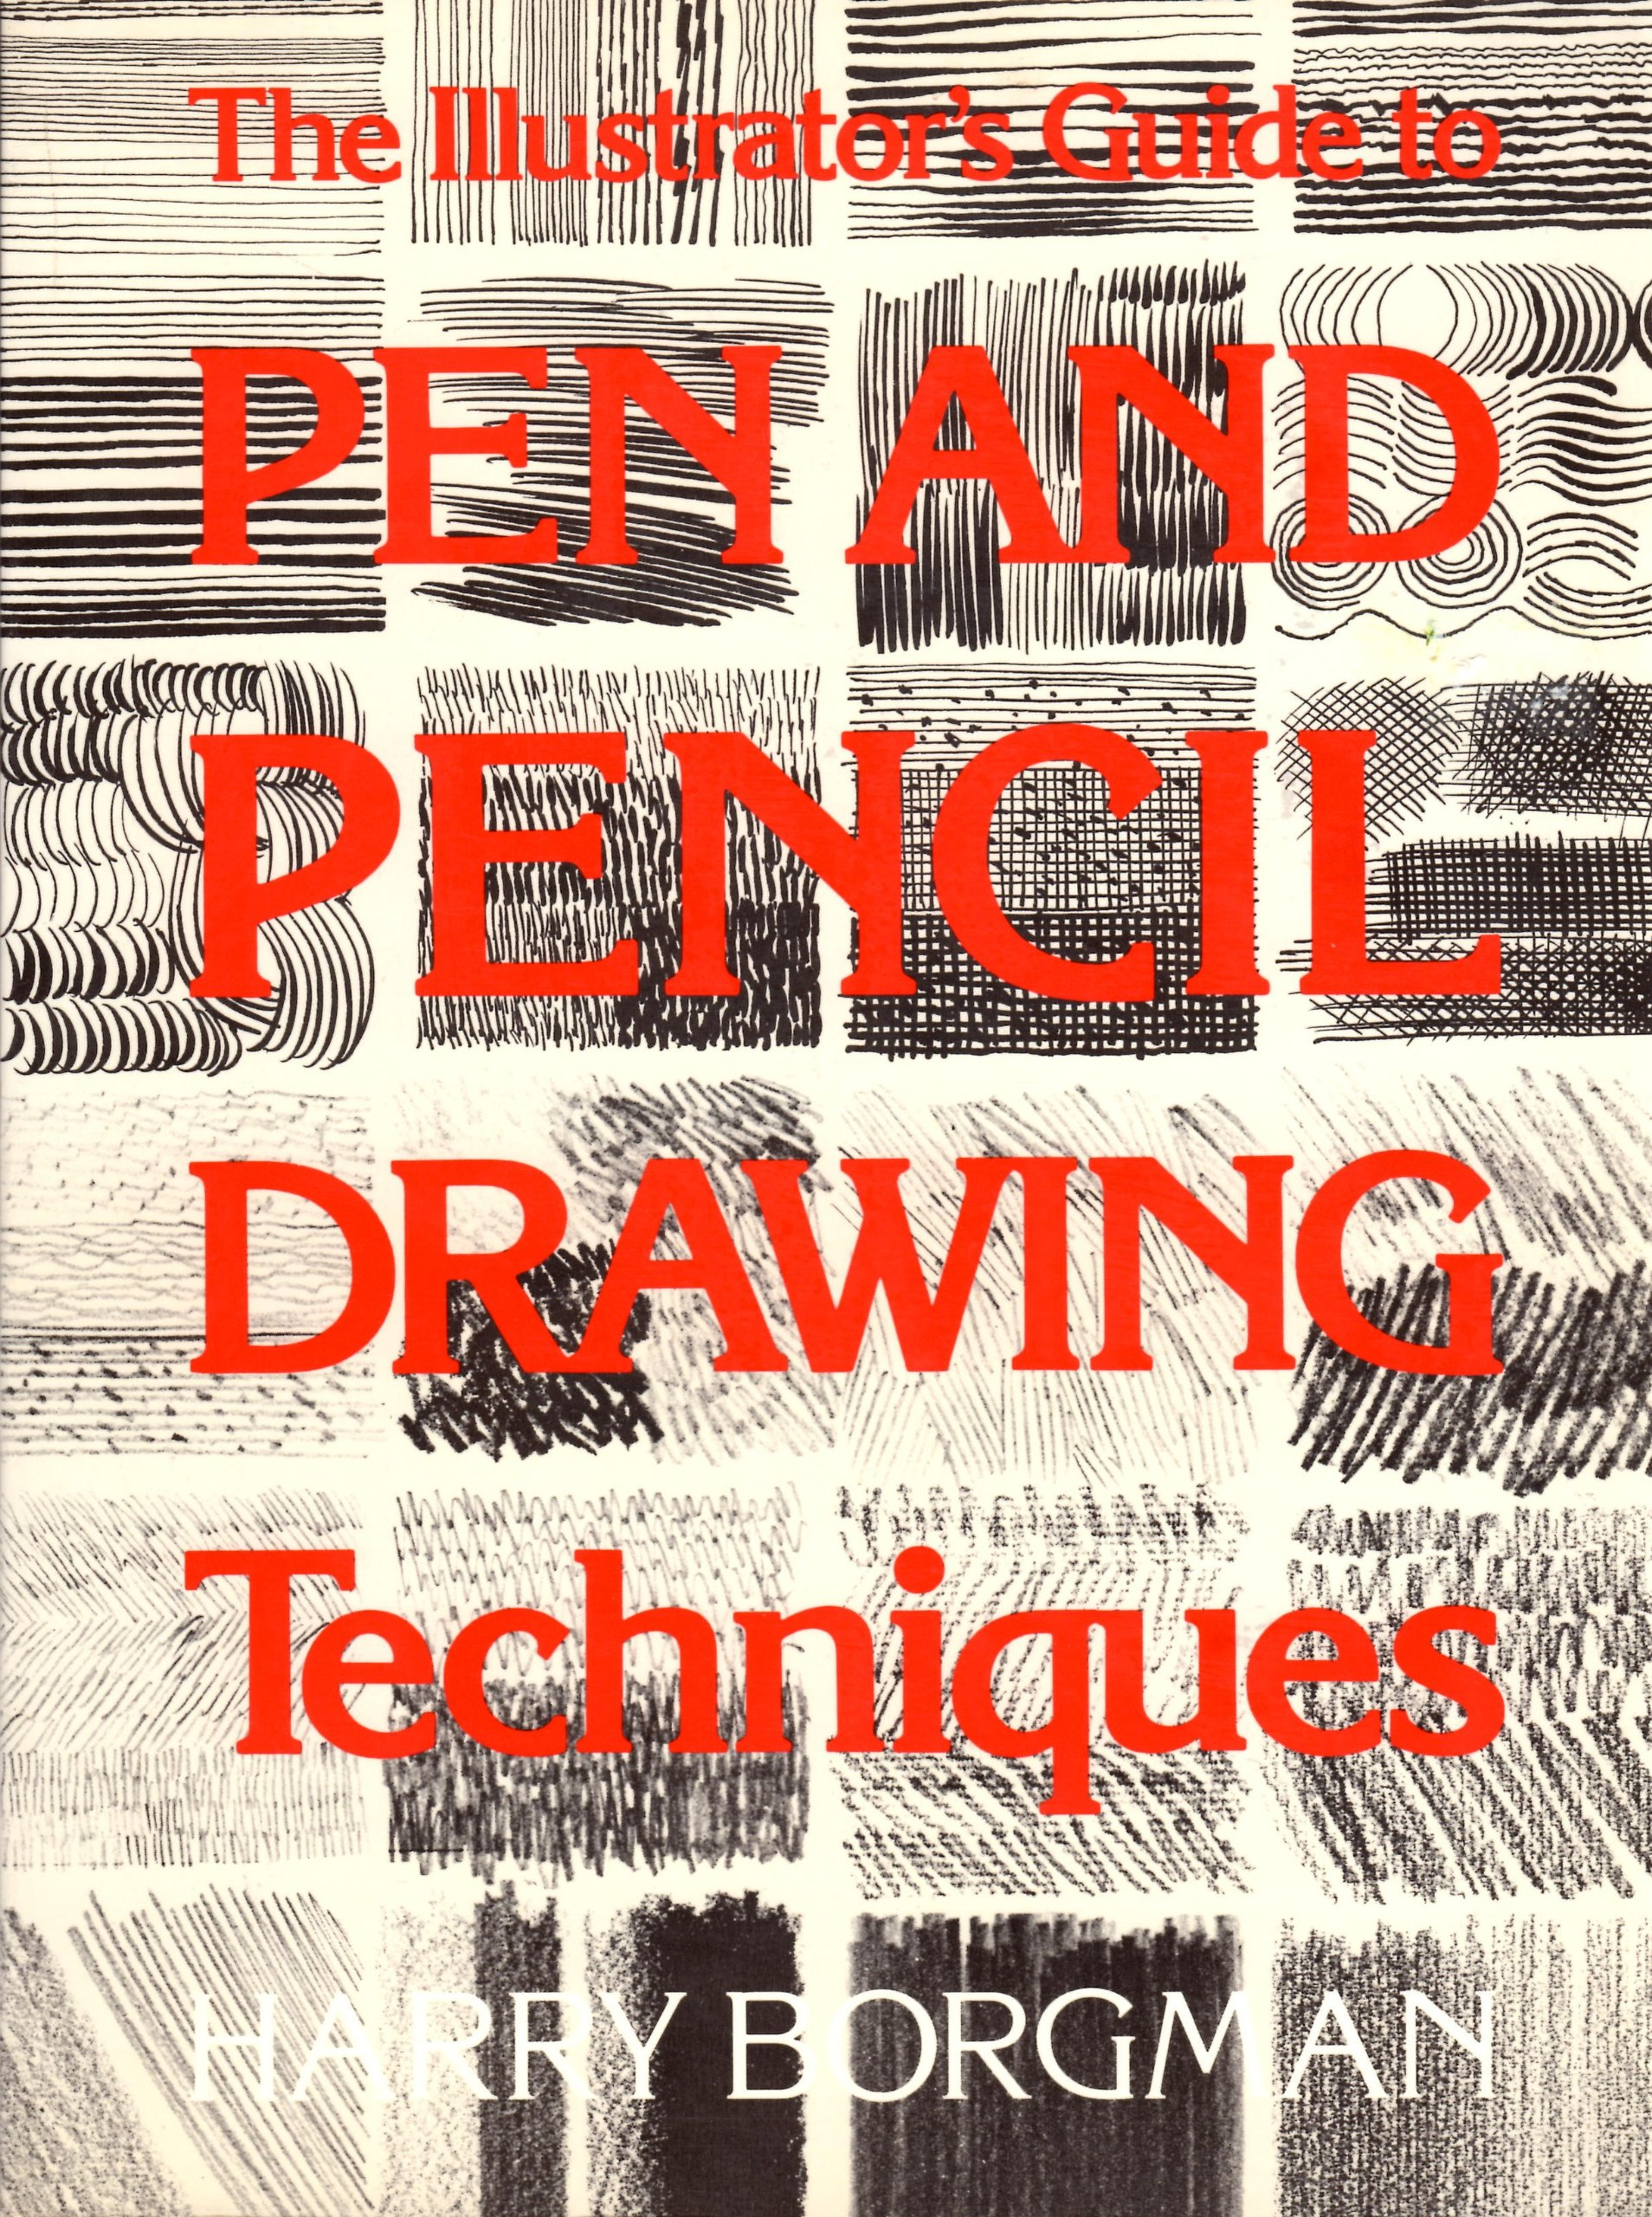 Illustrators guide to pen and pencil drawing techniques paperback aug 1 1989